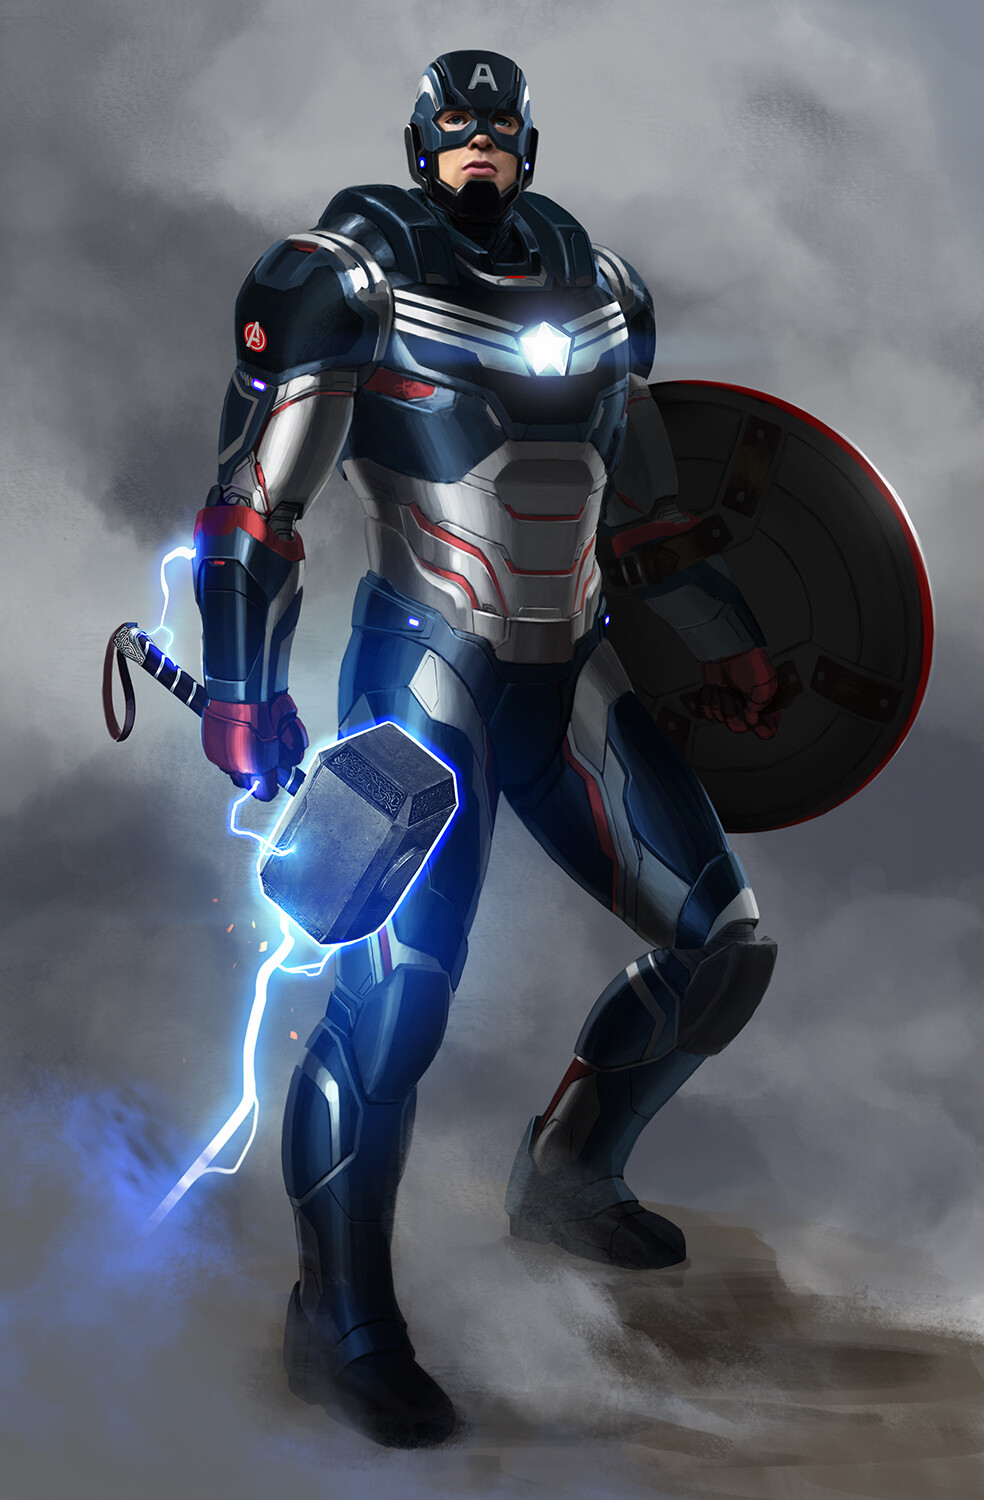 Fan art of Captain America, armored by Stark.